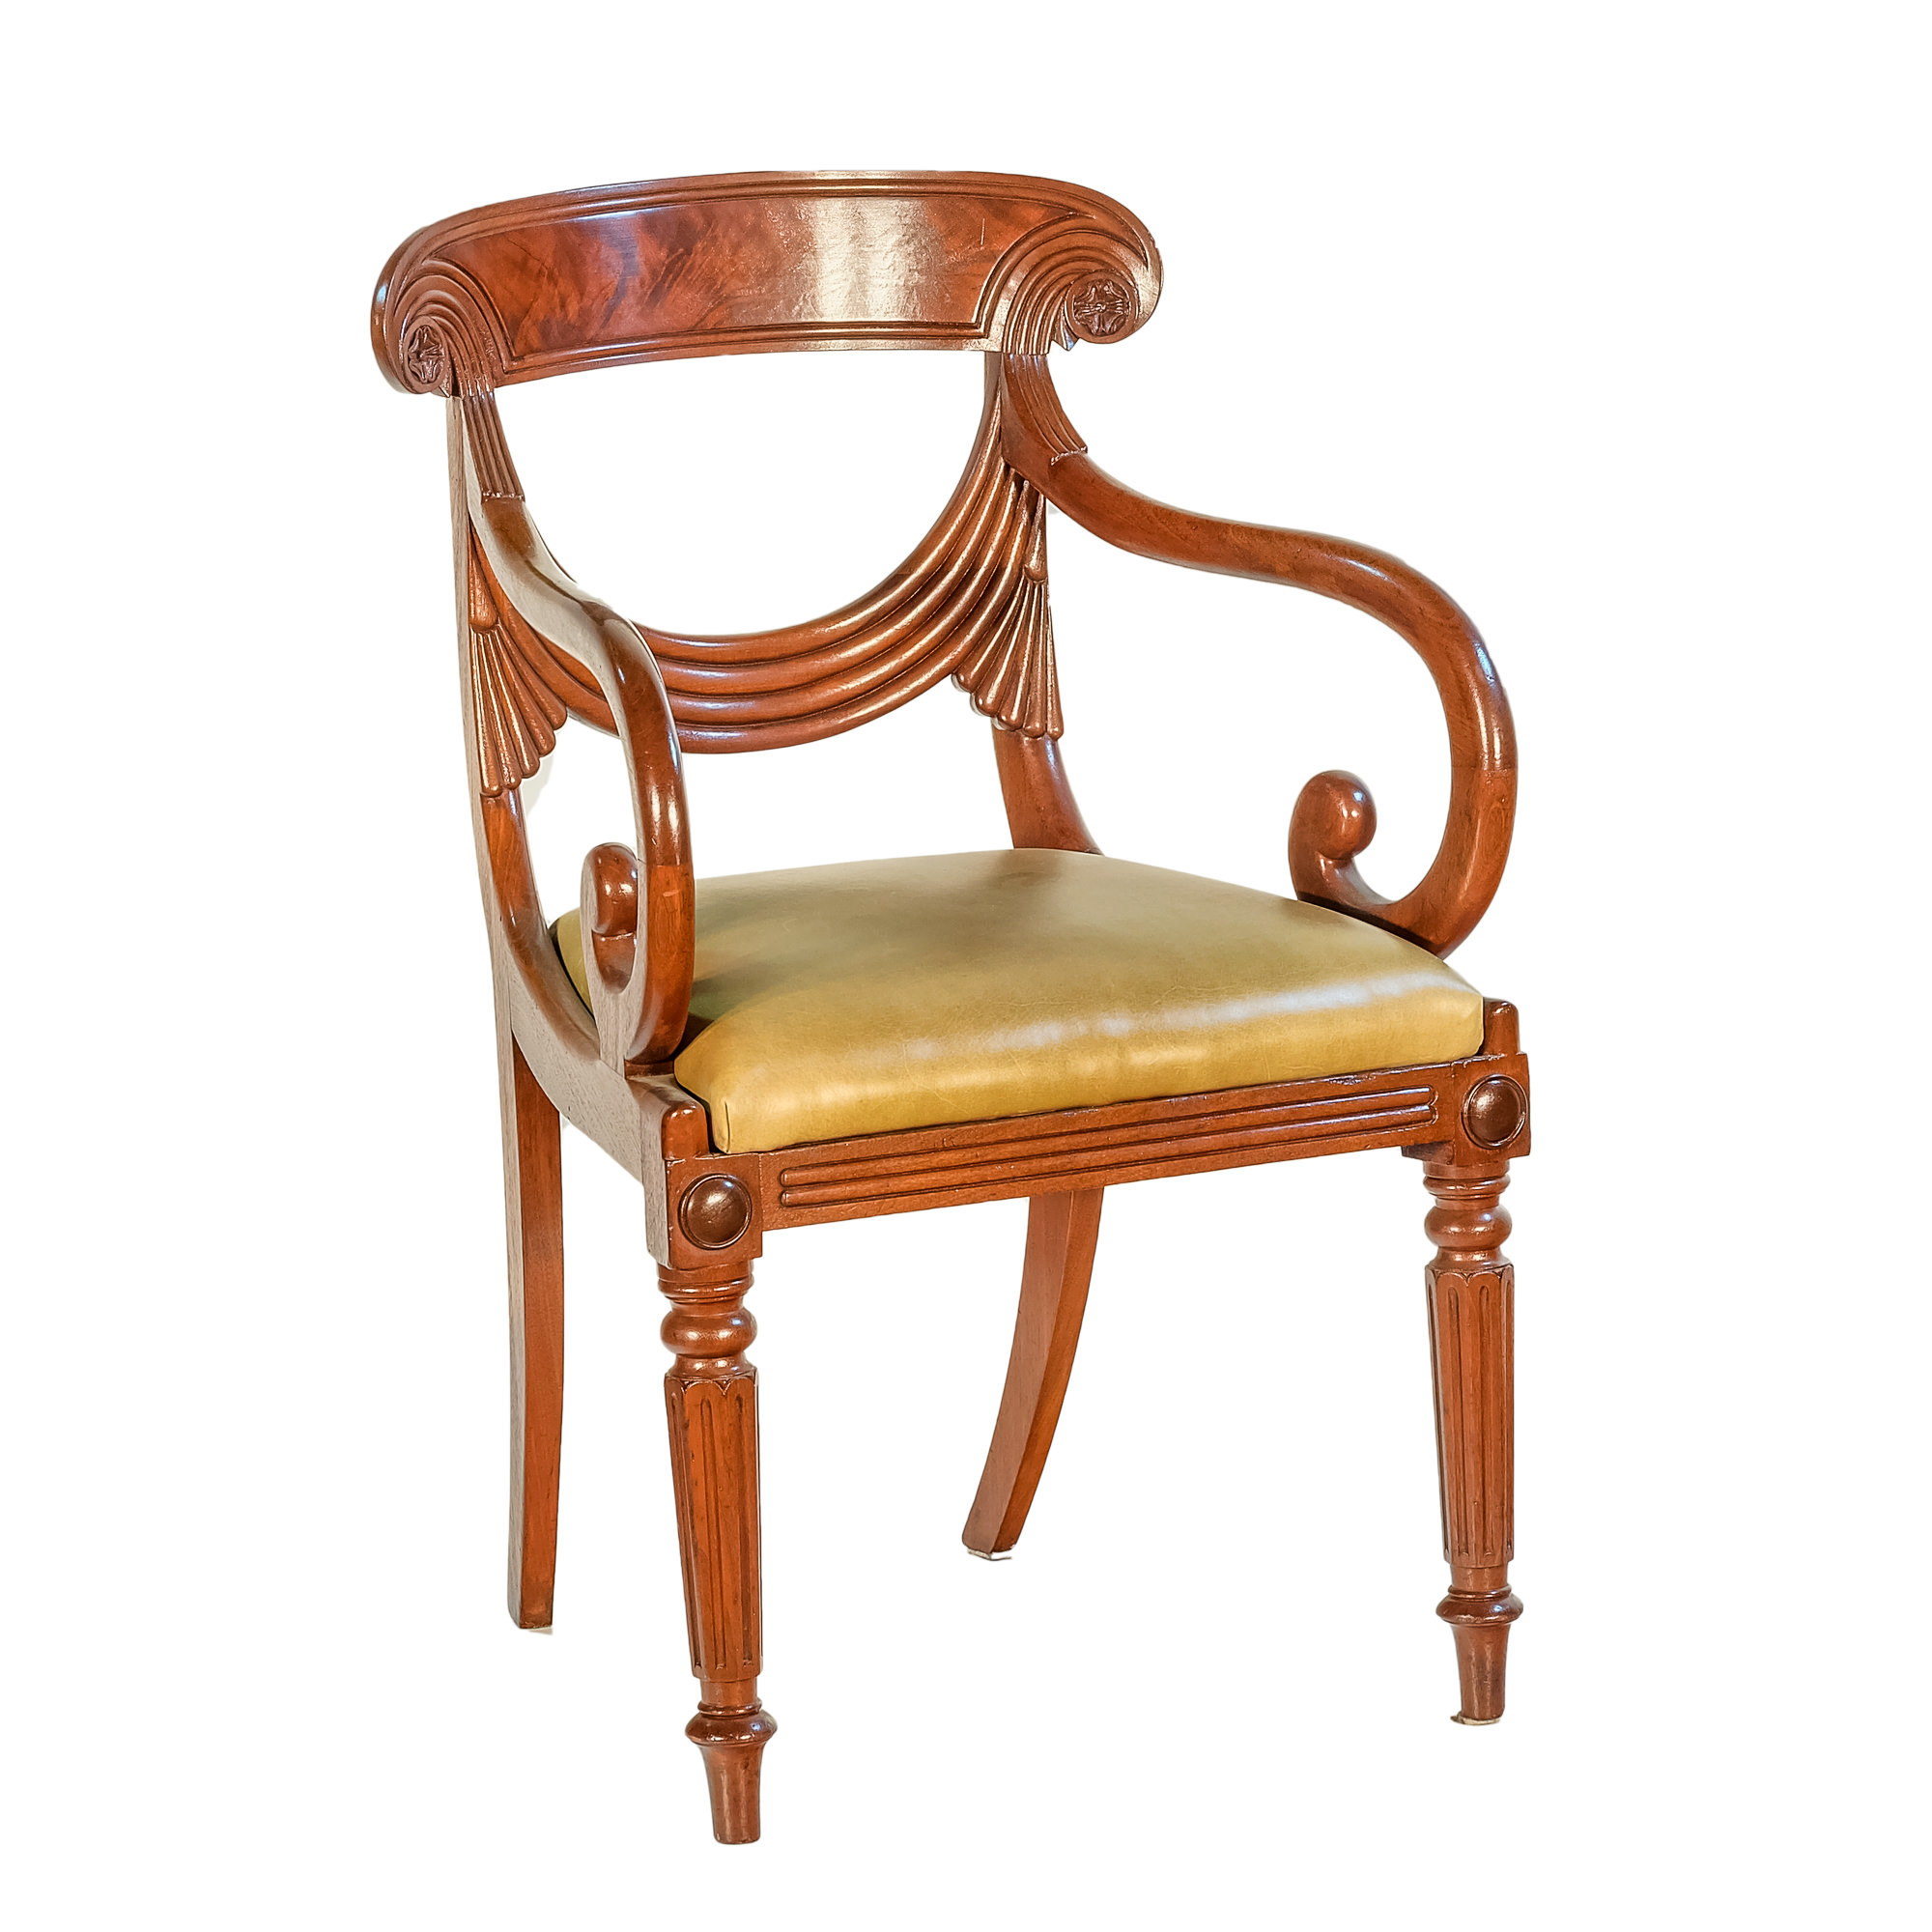 'Regency Period Mahogany Elbow Chair with Olive Green Leather Seat Circa 1820'